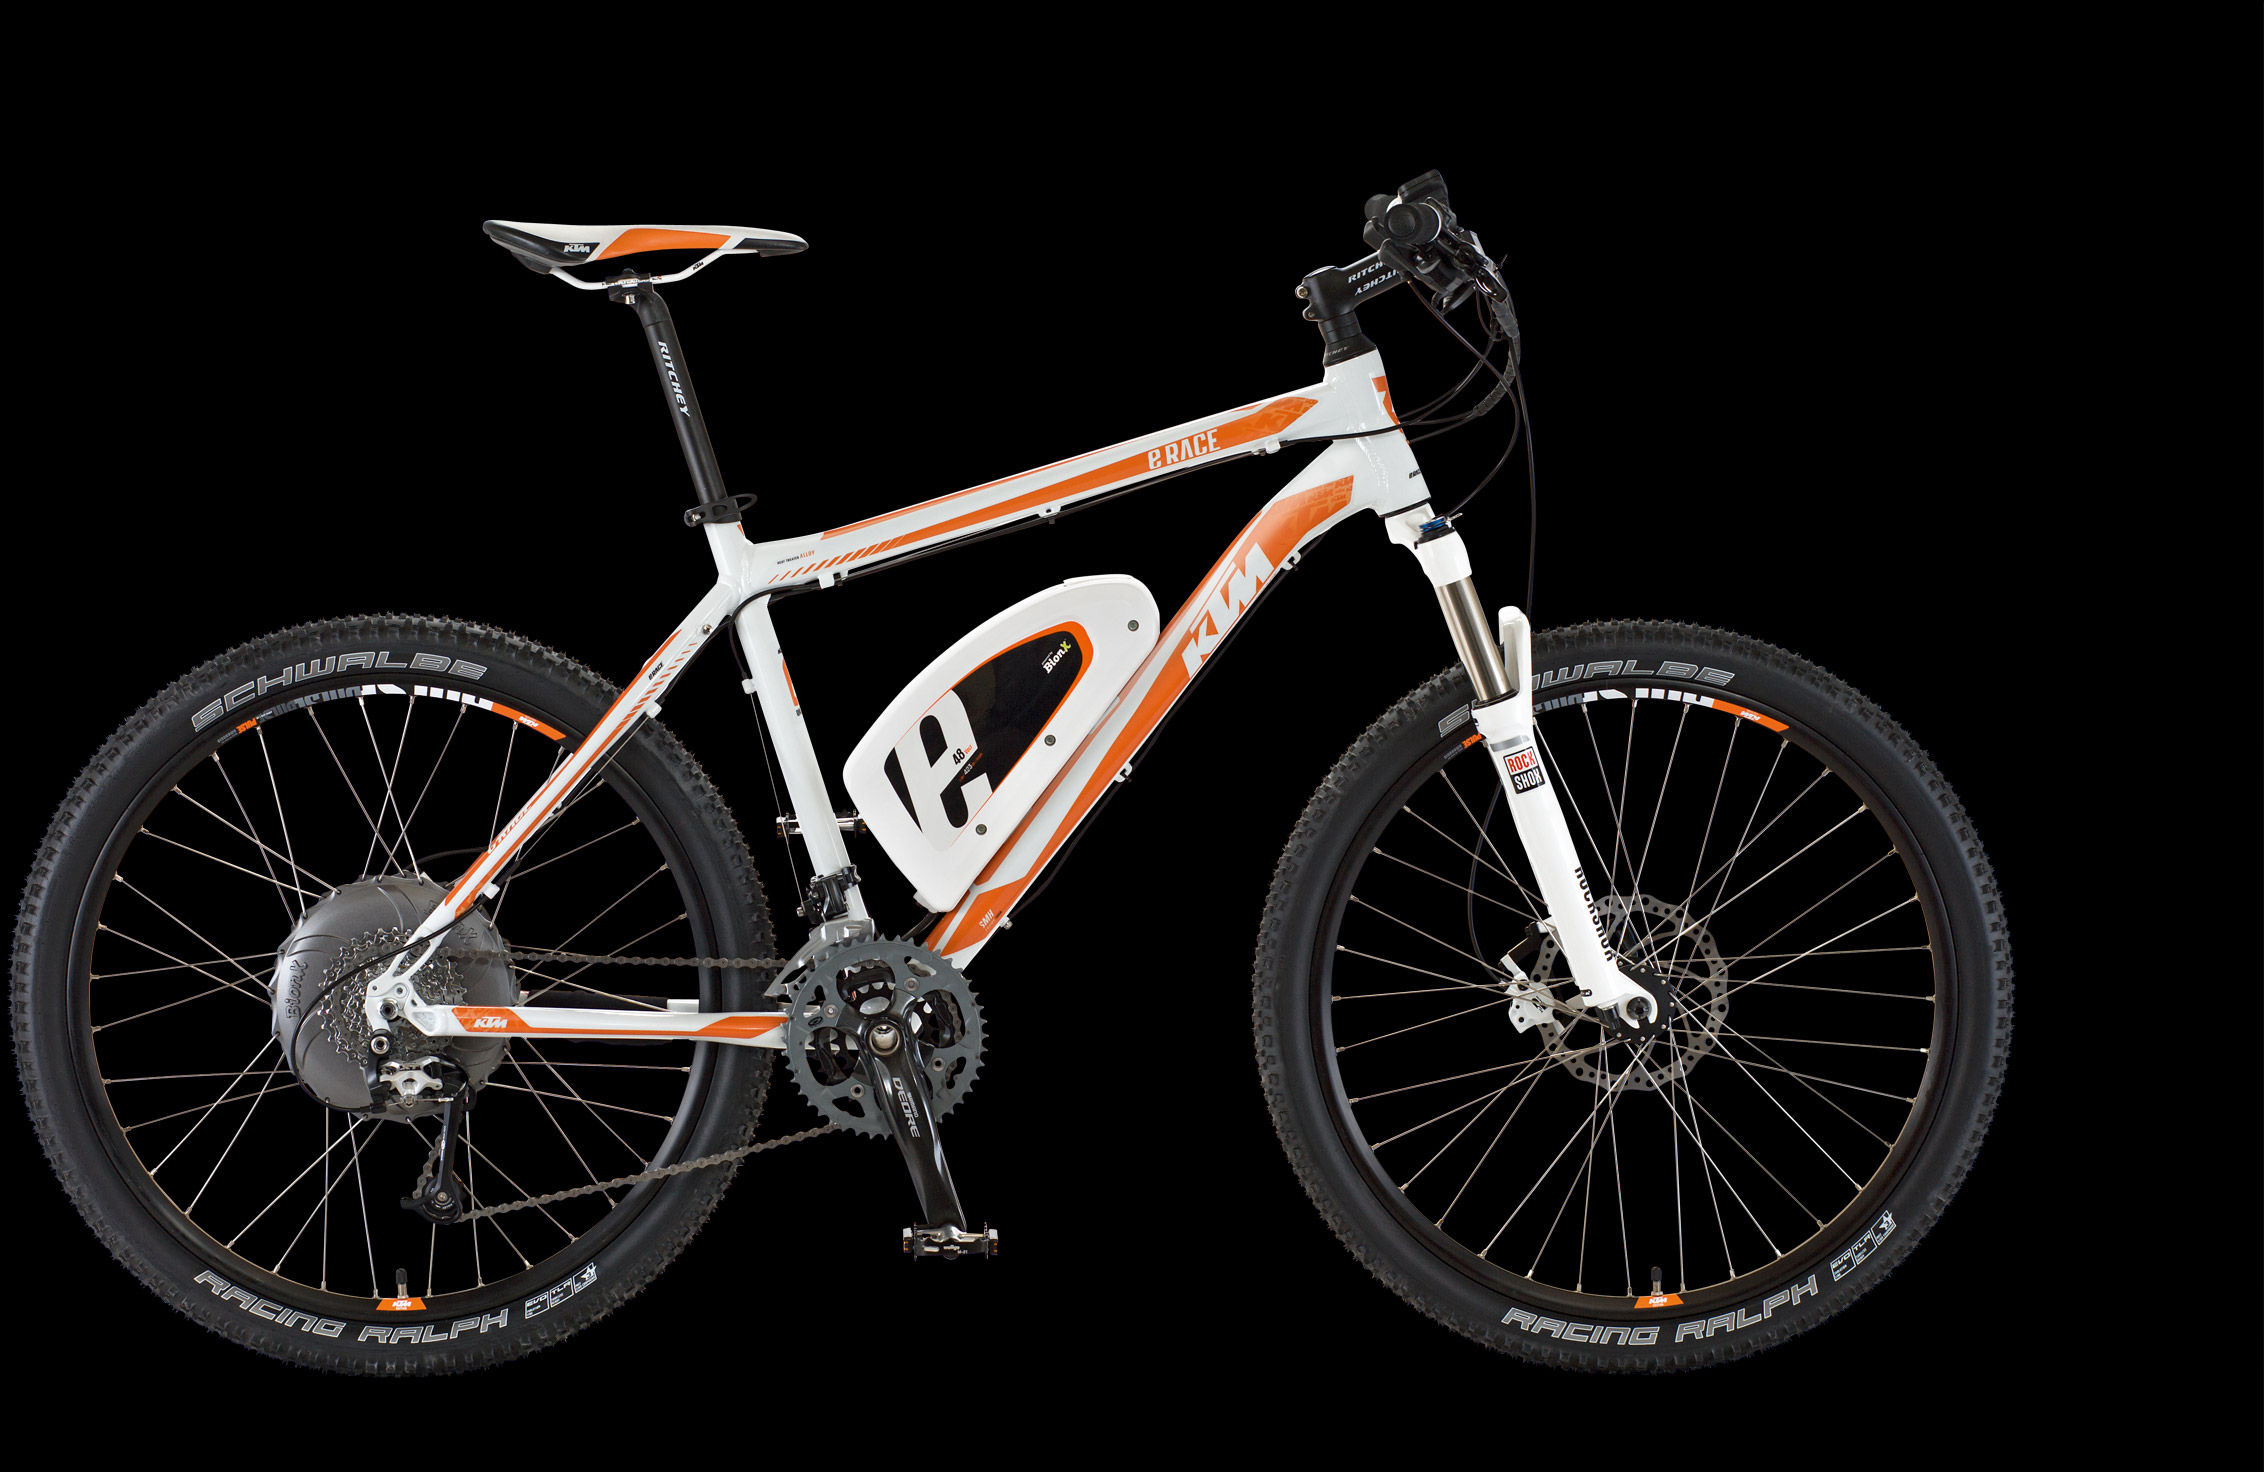 Ktm E Race 2013 Review The Bike List